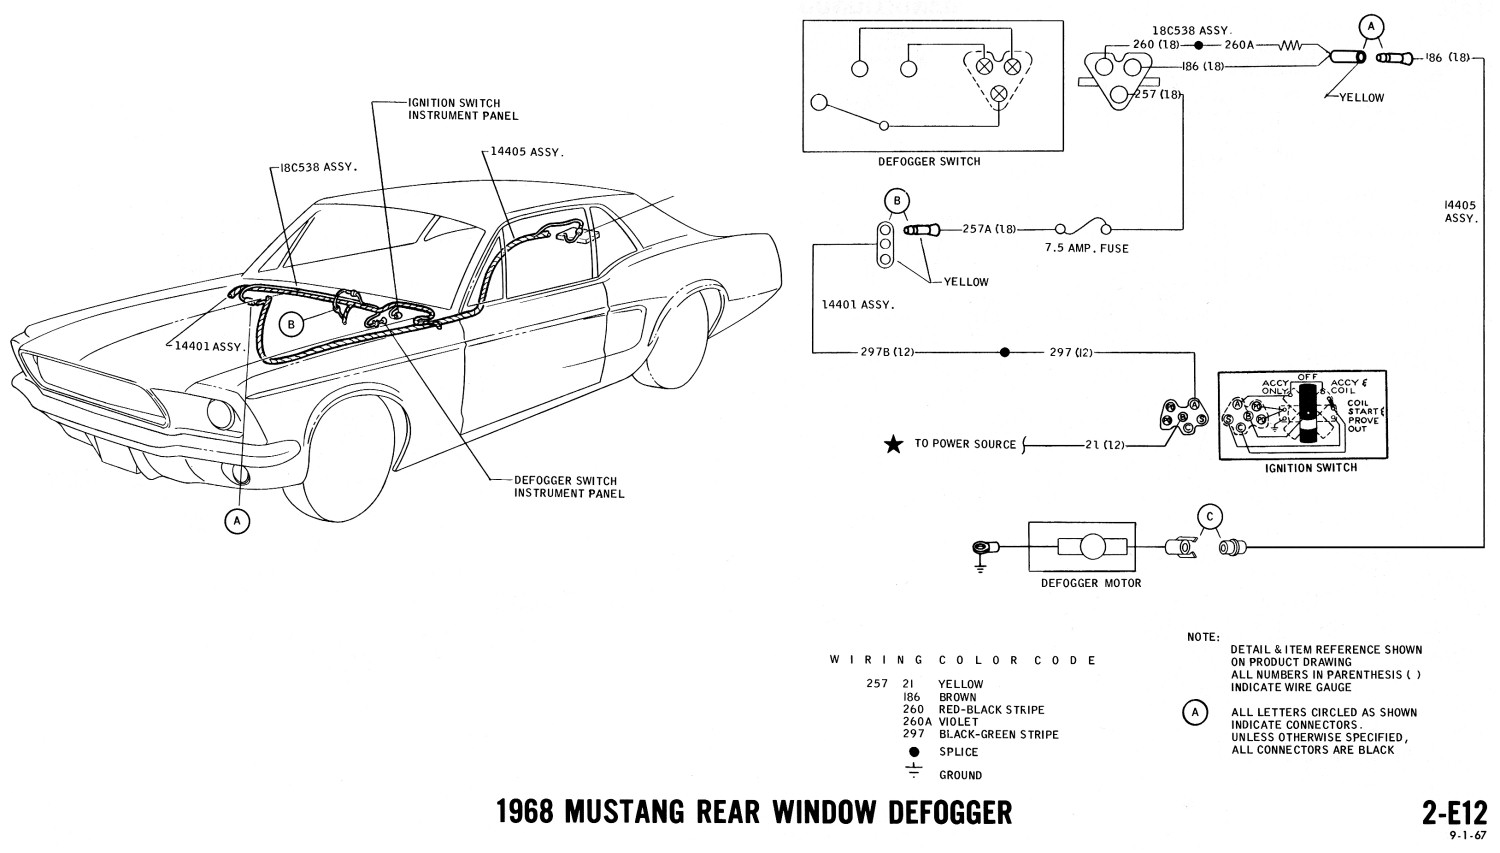 1968 Mustang Wiring Diagrams And Vacuum Schematics Average Joe 2000 Jeep Grand Cherokee Steering Colum Diagram Rear Window Defrost